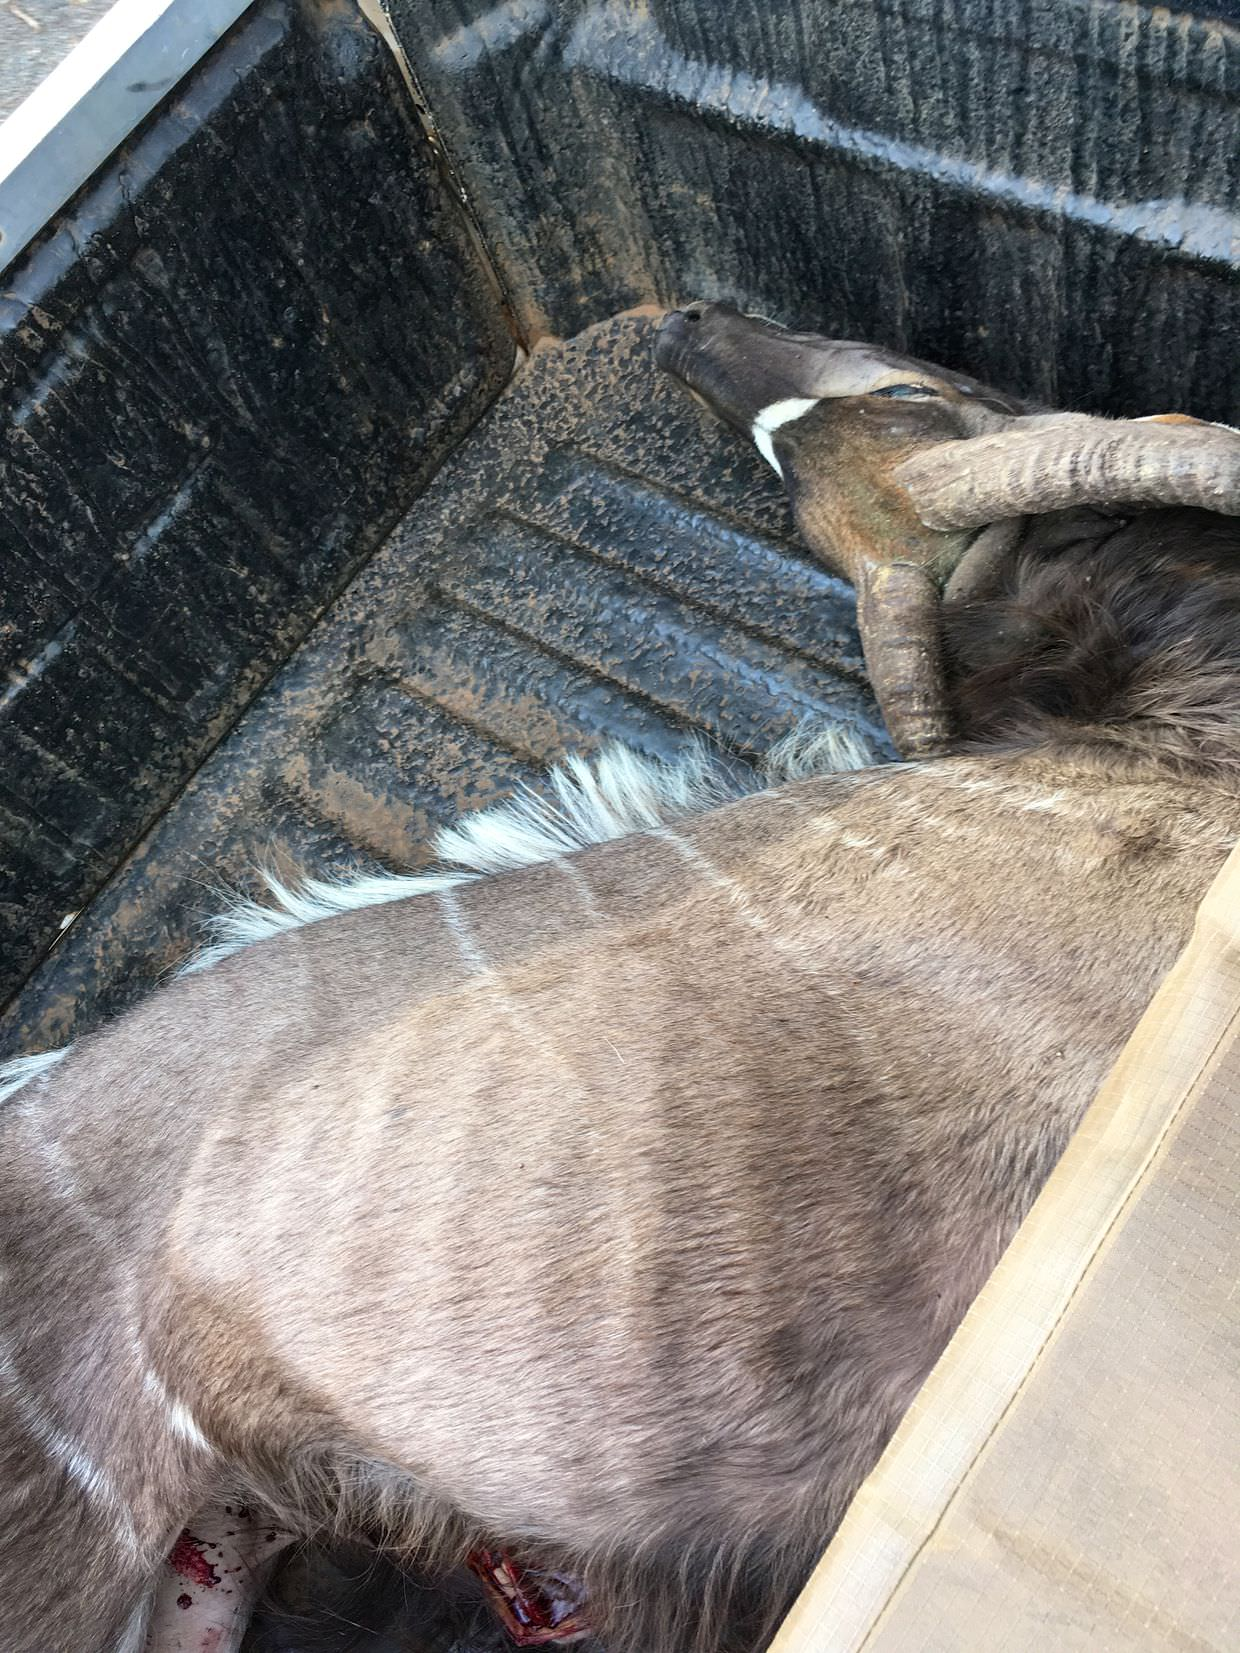 Welcome to ZRR, here's a dead nyala